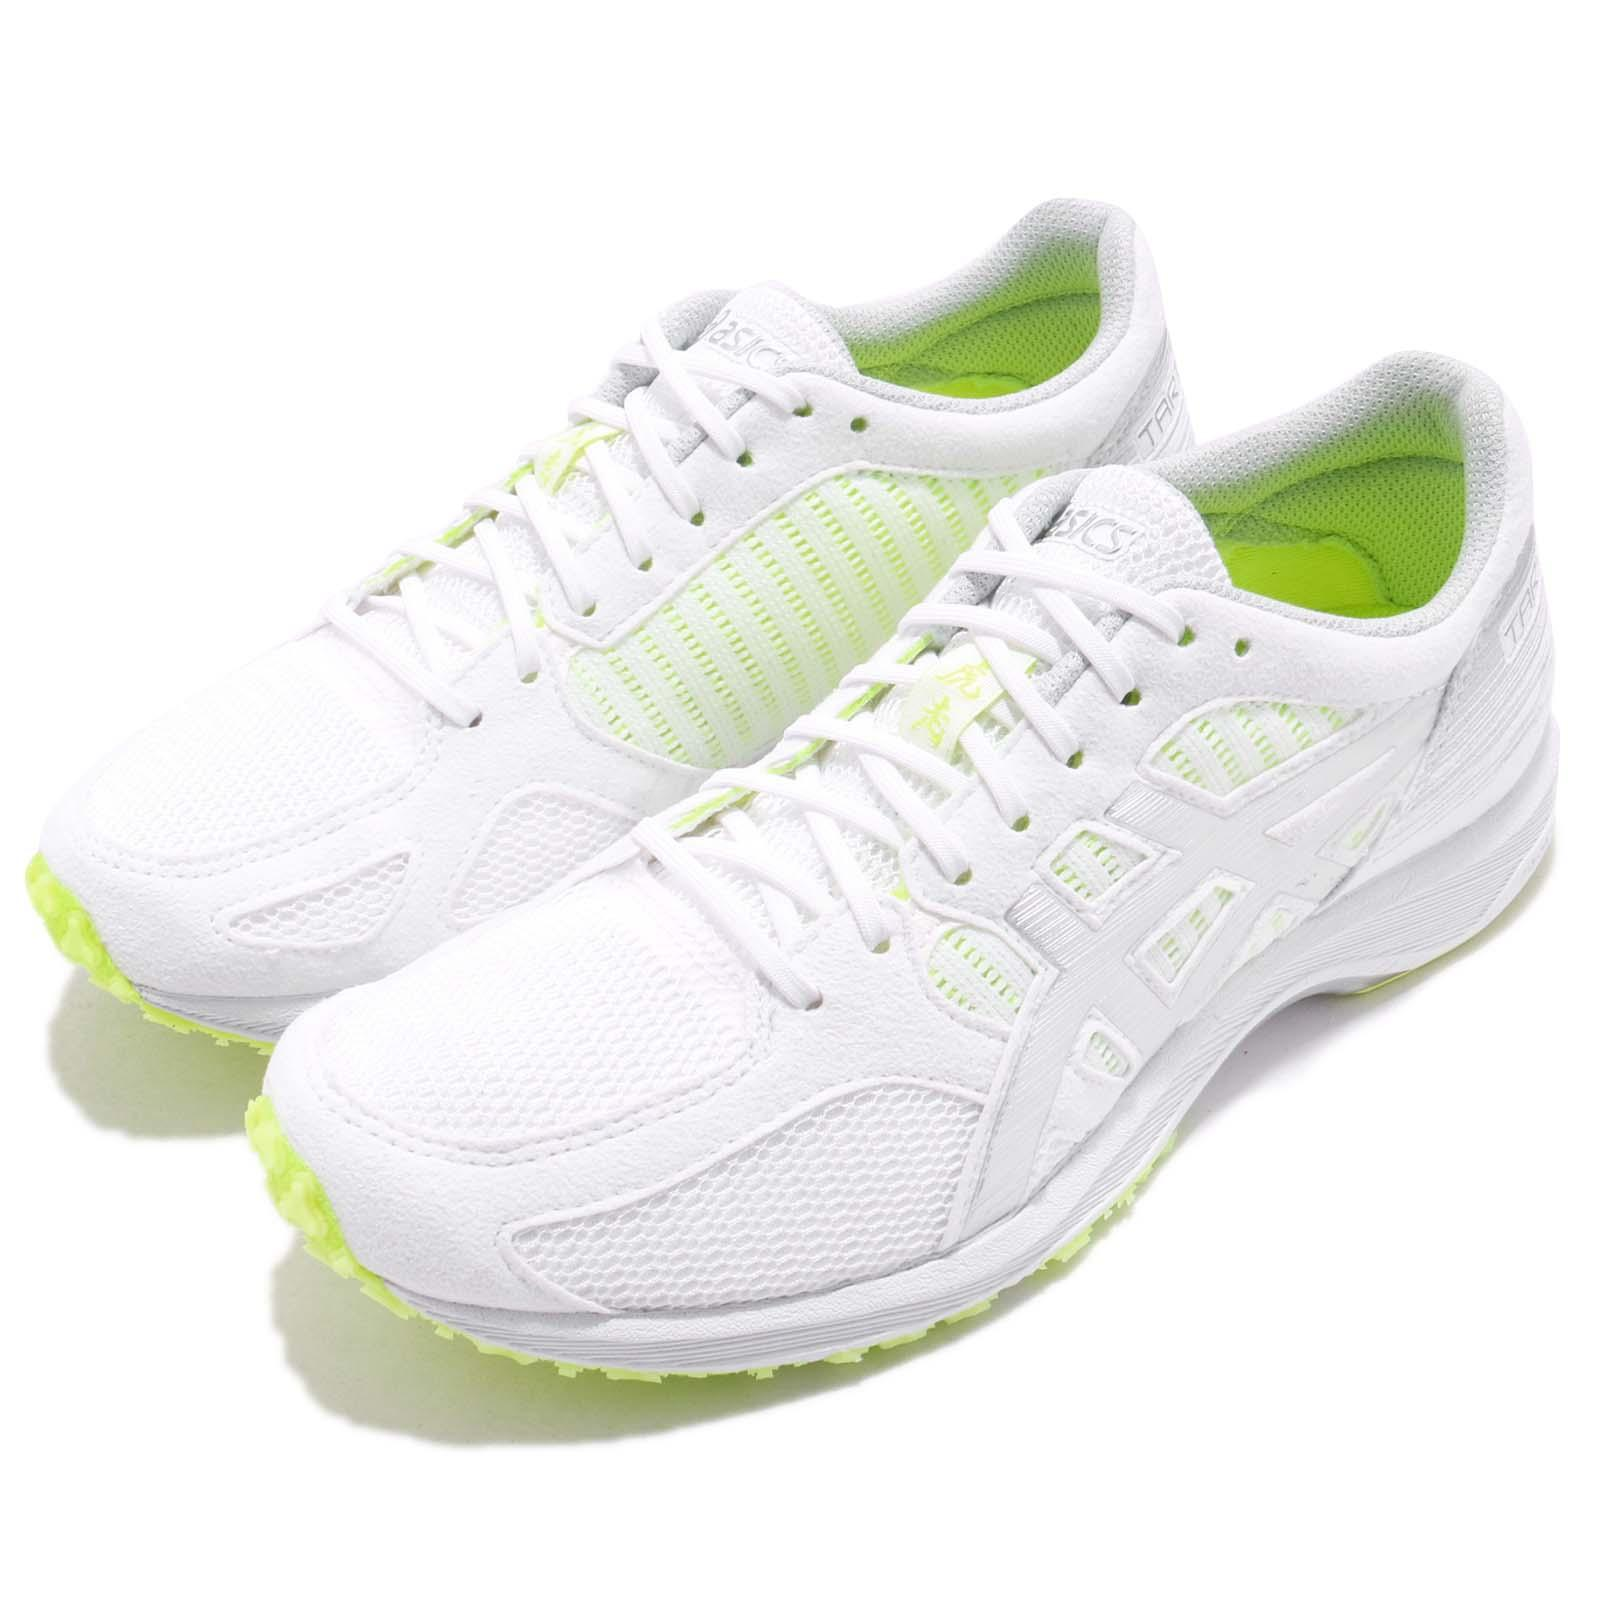 Details about Asics Tartherzeal 6 VI White Silver Safety Yellow Women Running Shoes T870N 0193